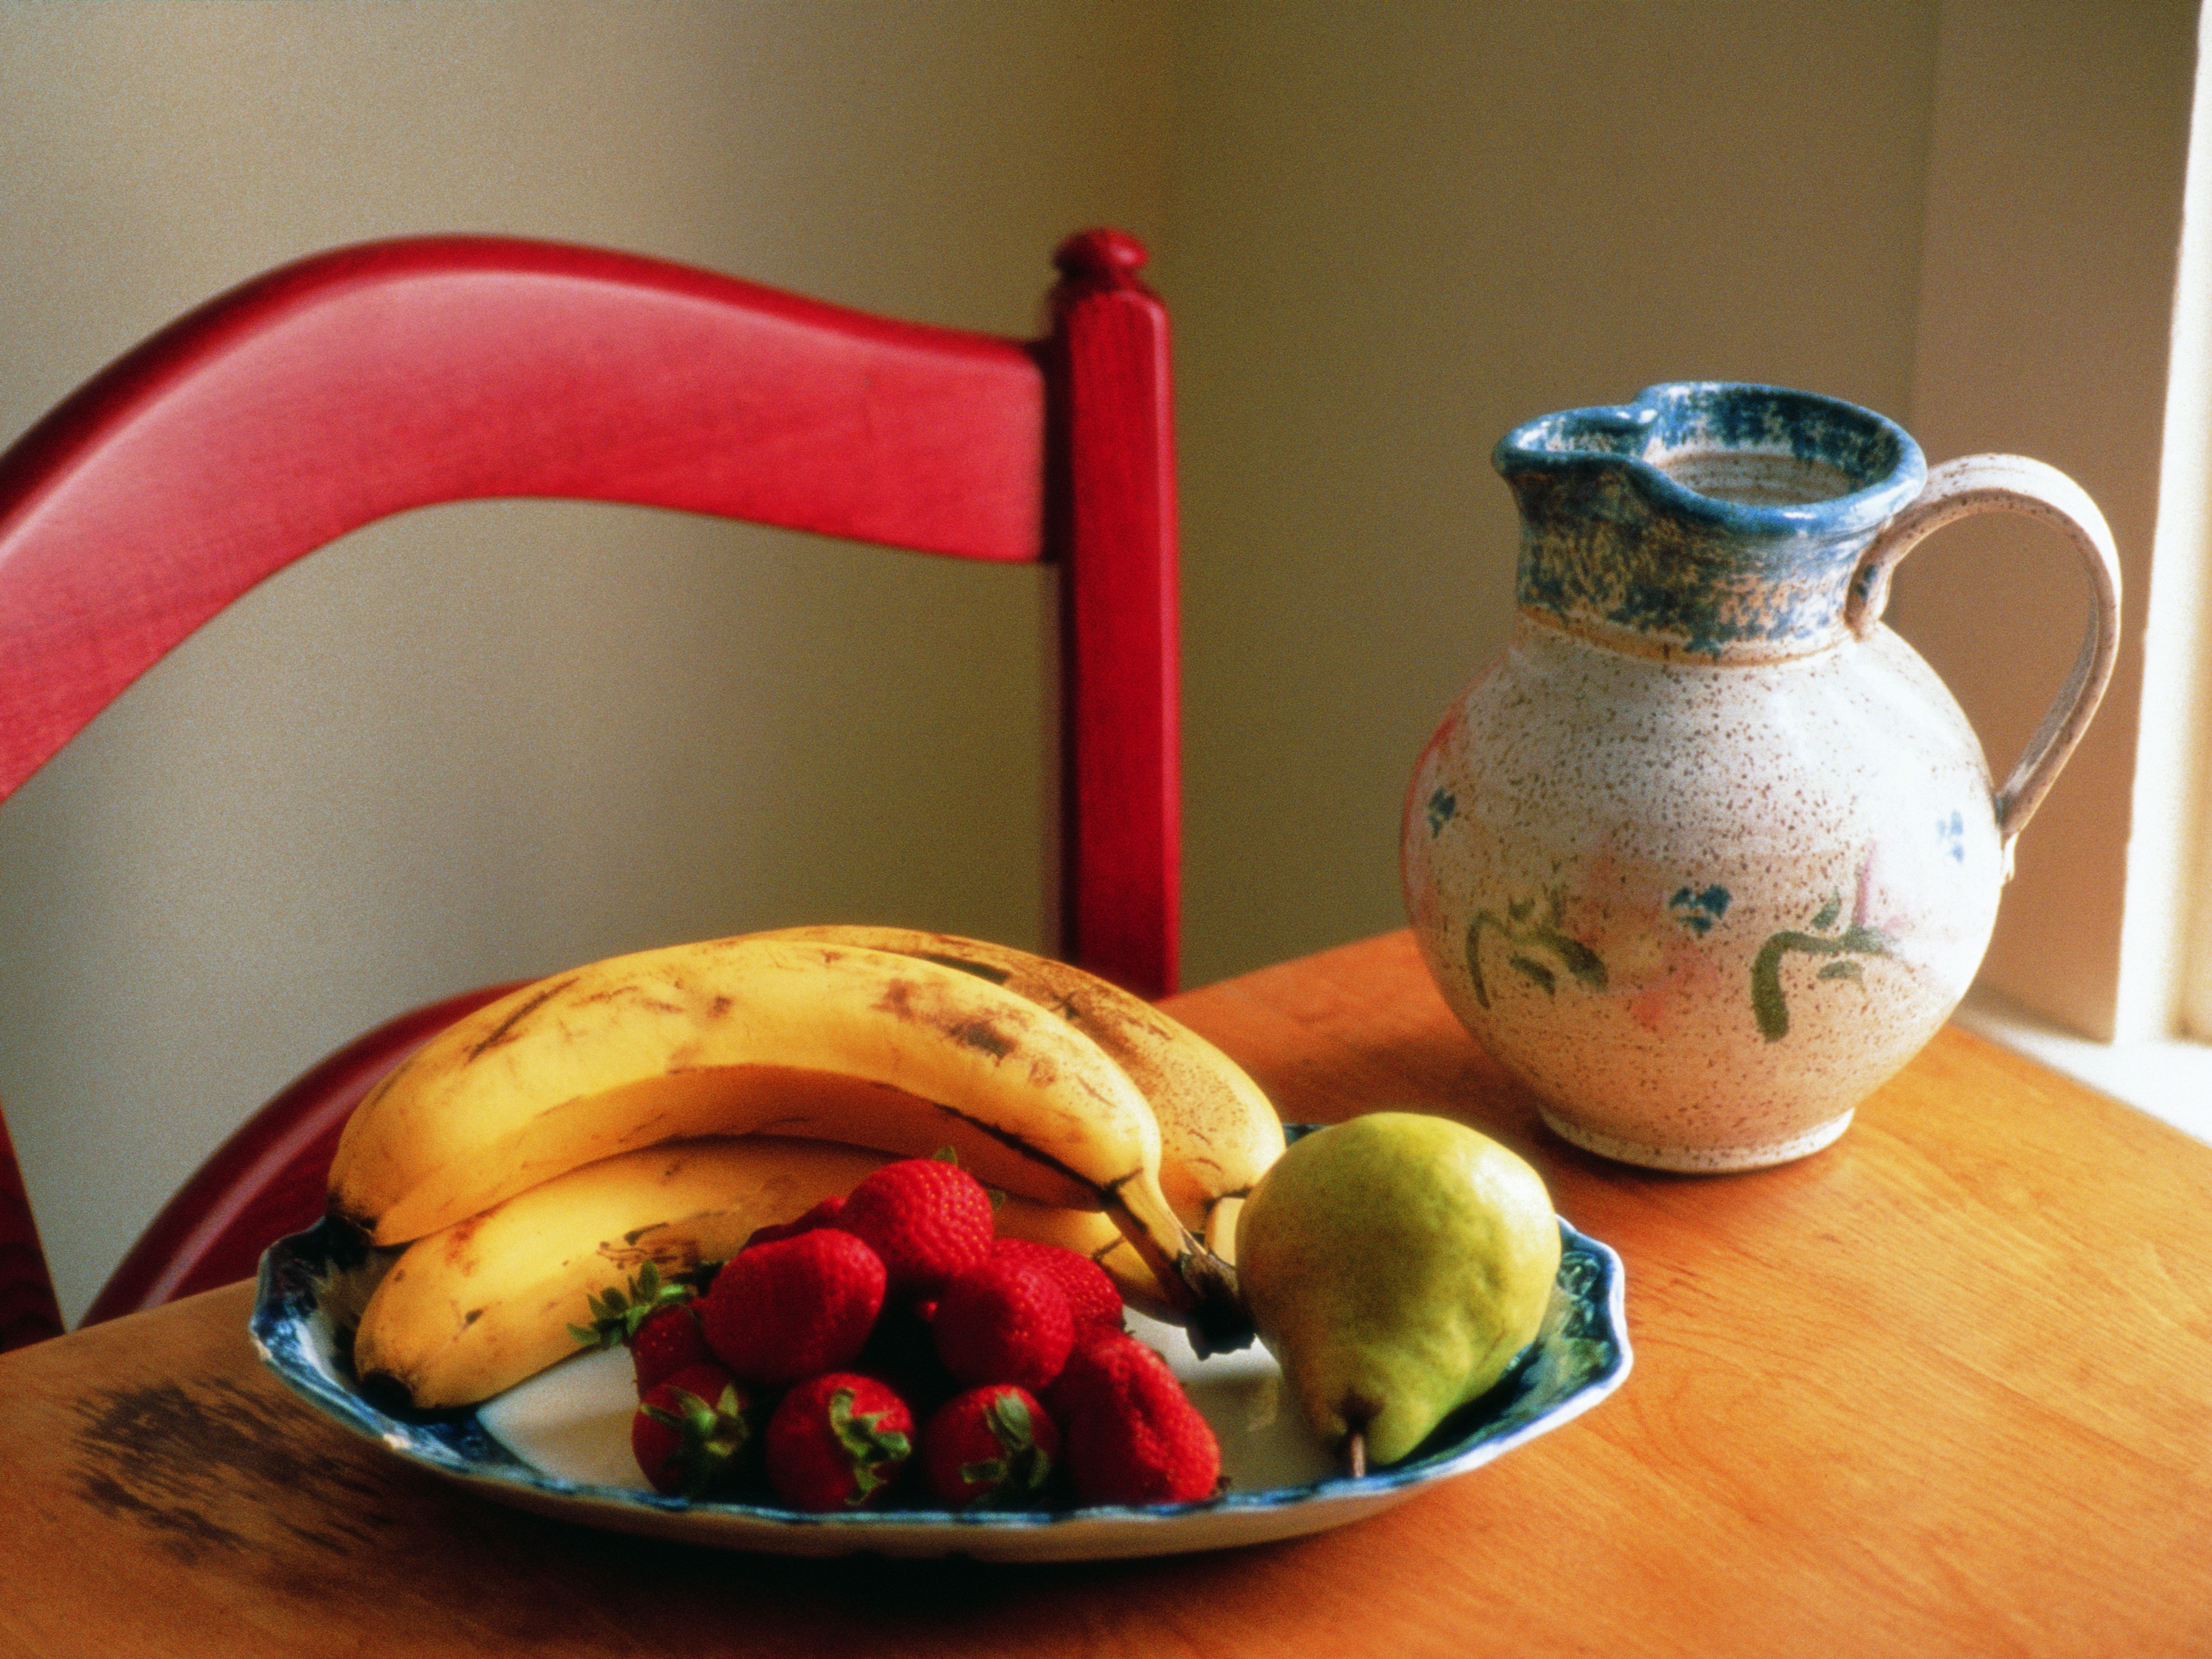 Strawberries and bananas provide insignificant amounts of protein.